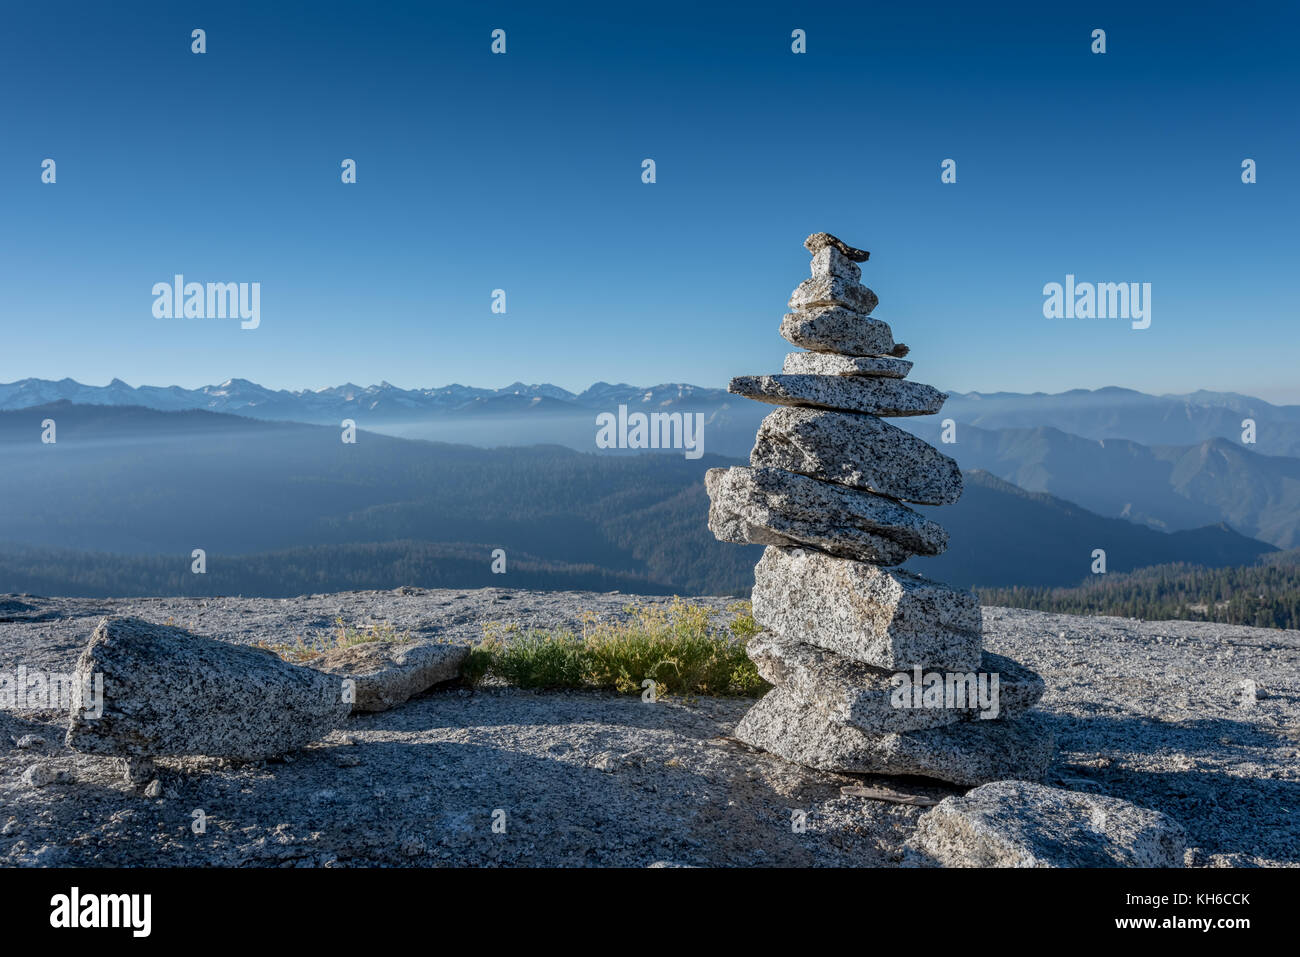 Cairn in Front of High Sierra Mountain Range - Stock Image